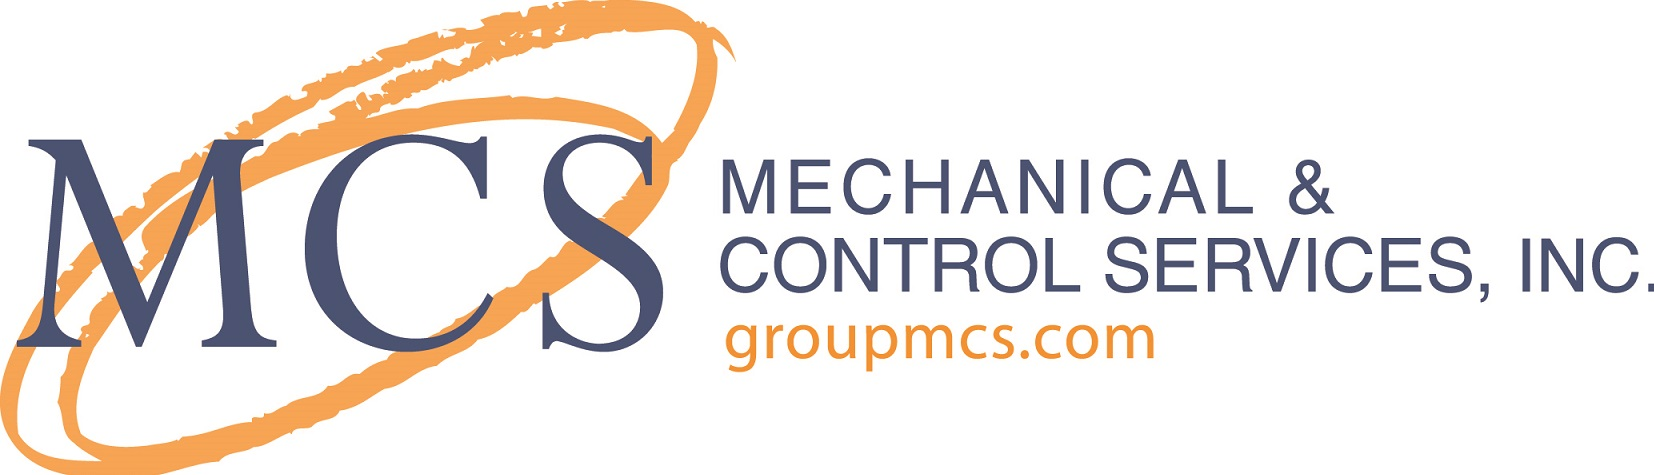 Mechanical & Control Services